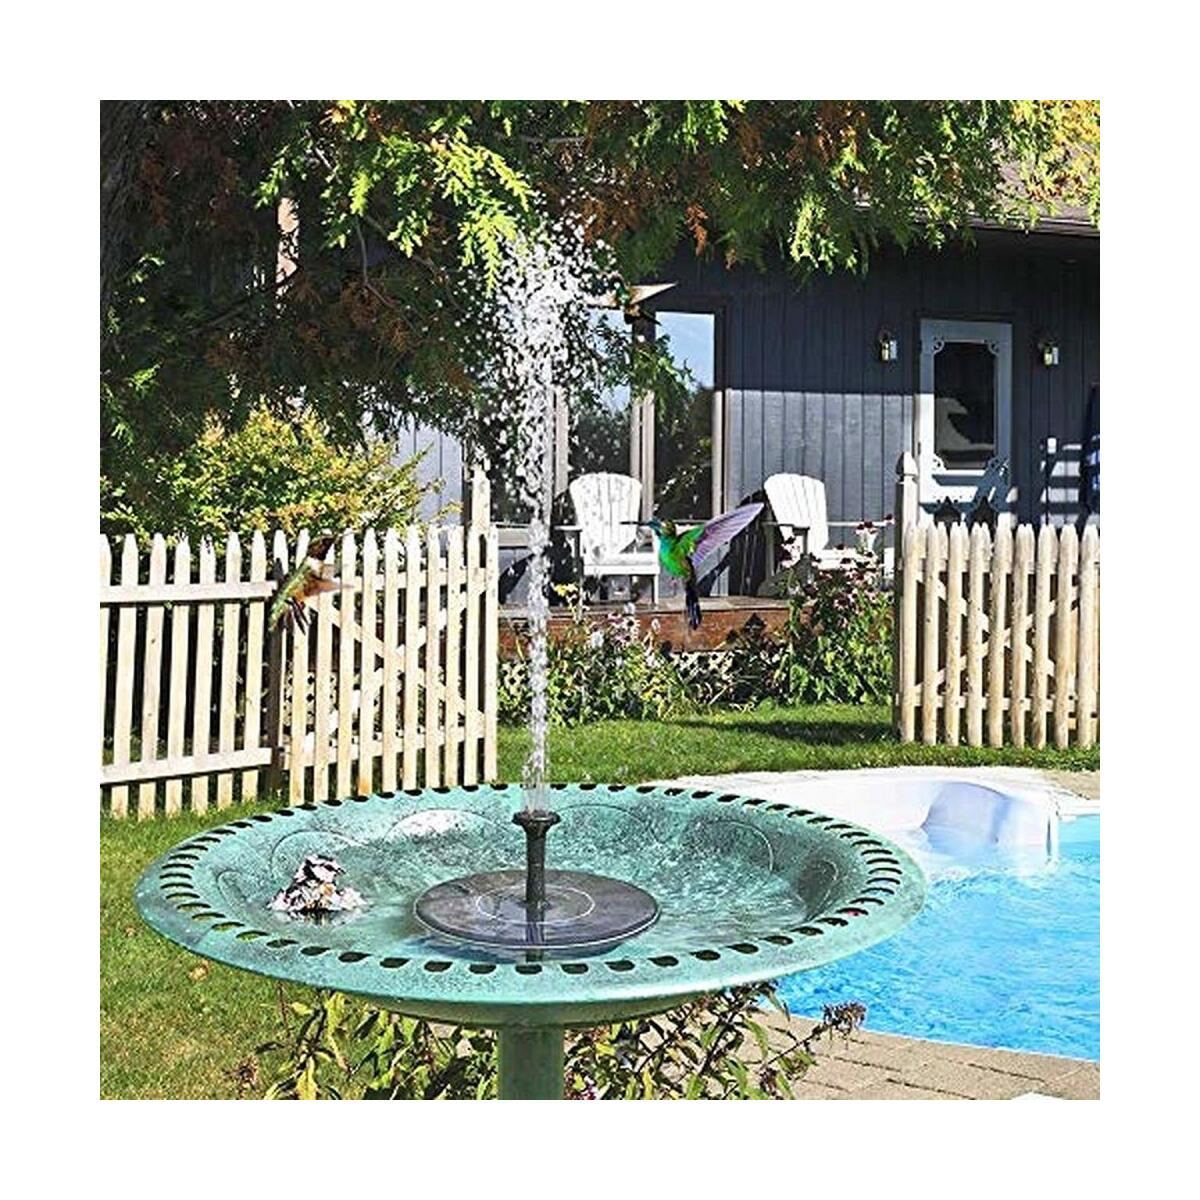 Upgraded Submersible Solar Water Fountain for Bird Bath Small Pond Garden and Lawn